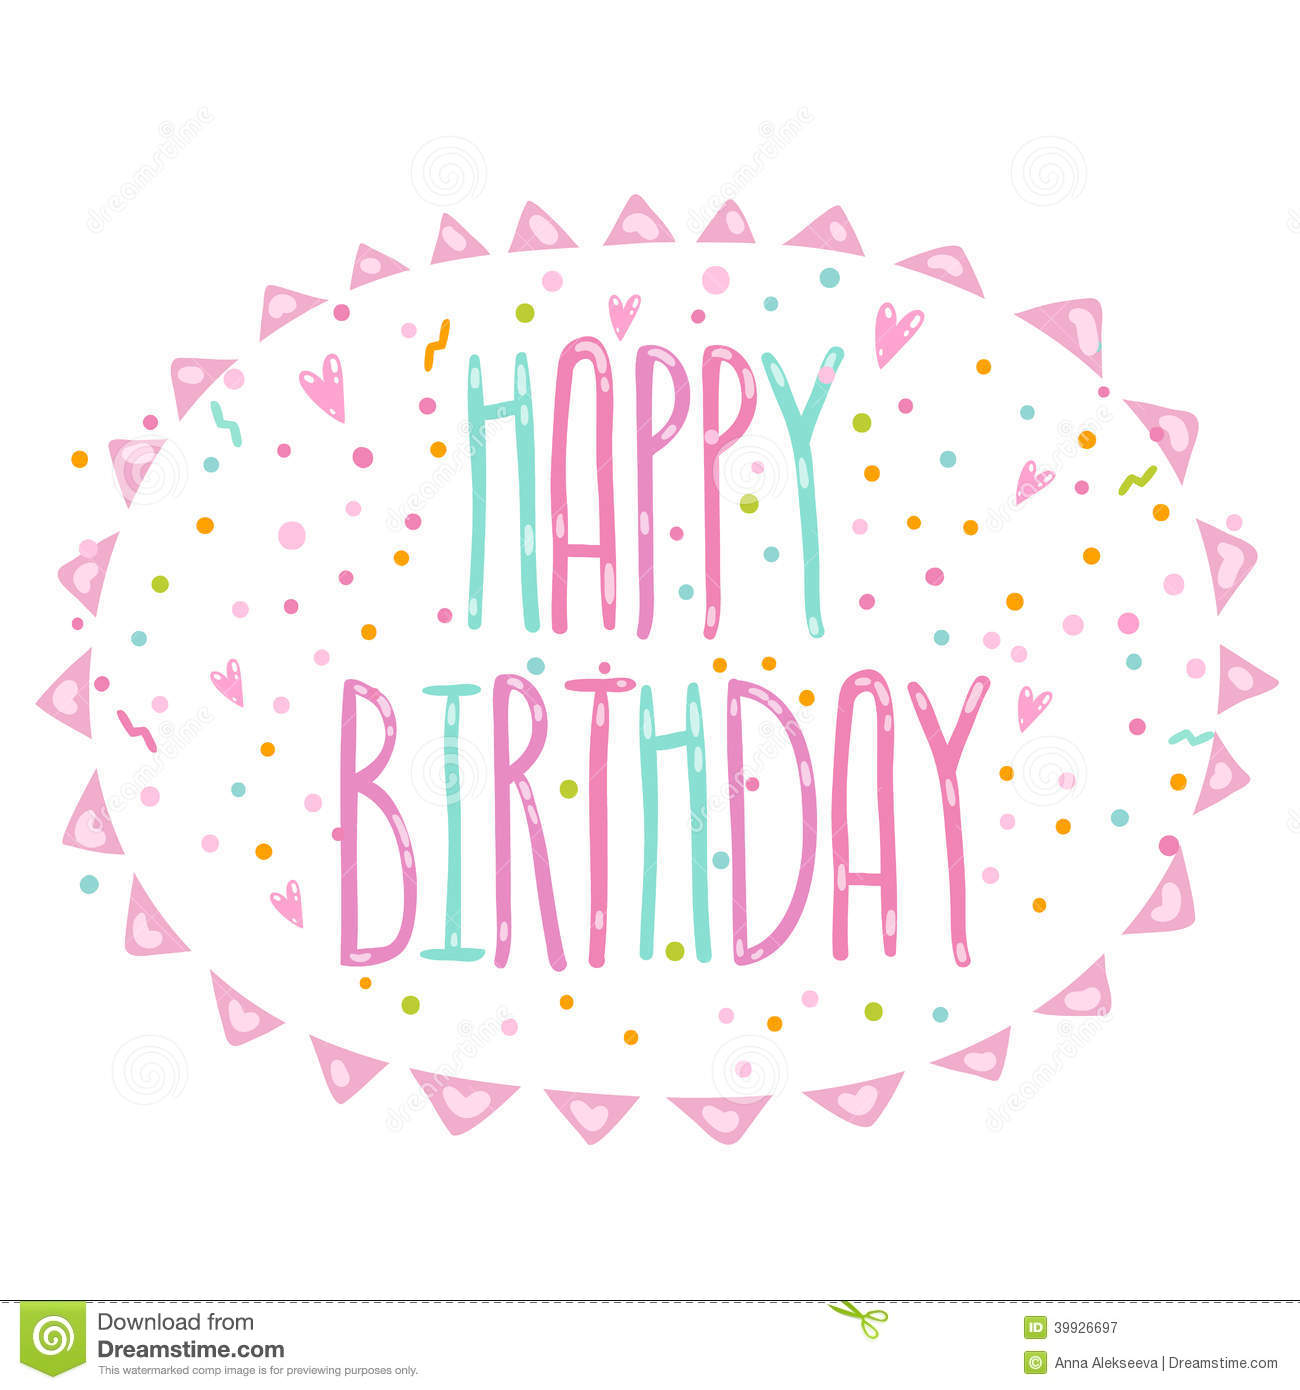 Happy Birthday Illustration Font ~ Happy birthday cute cartoon text with confetti stock vector image